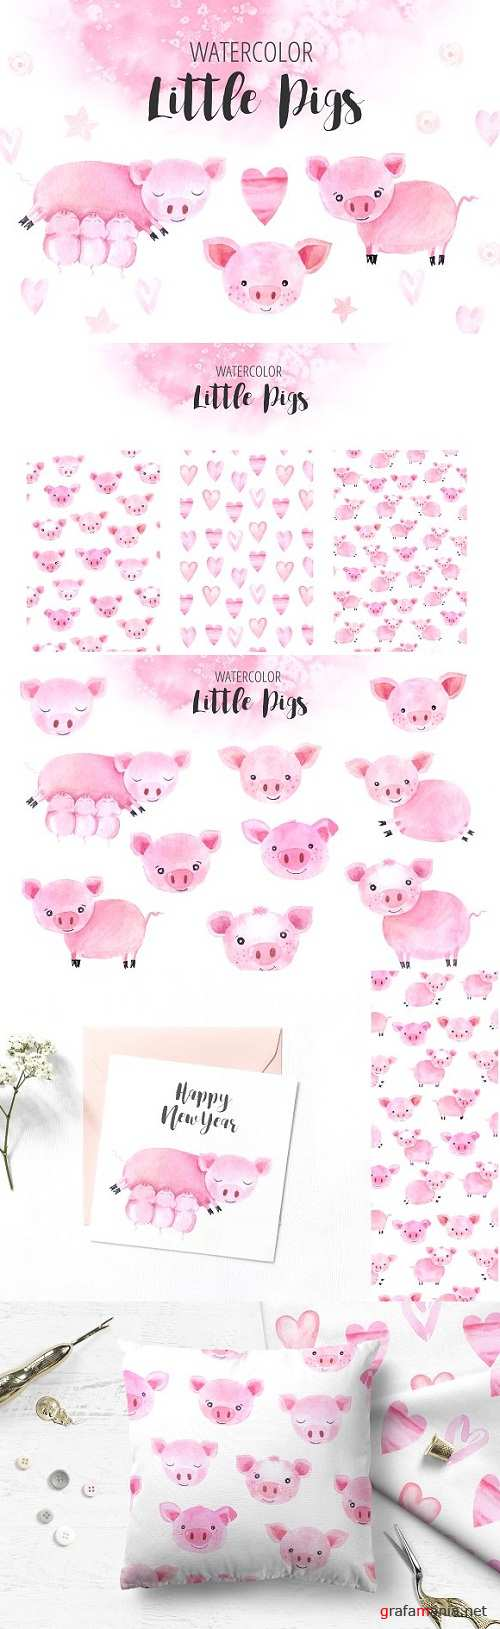 Watercolor Little Pigs Set 3228509